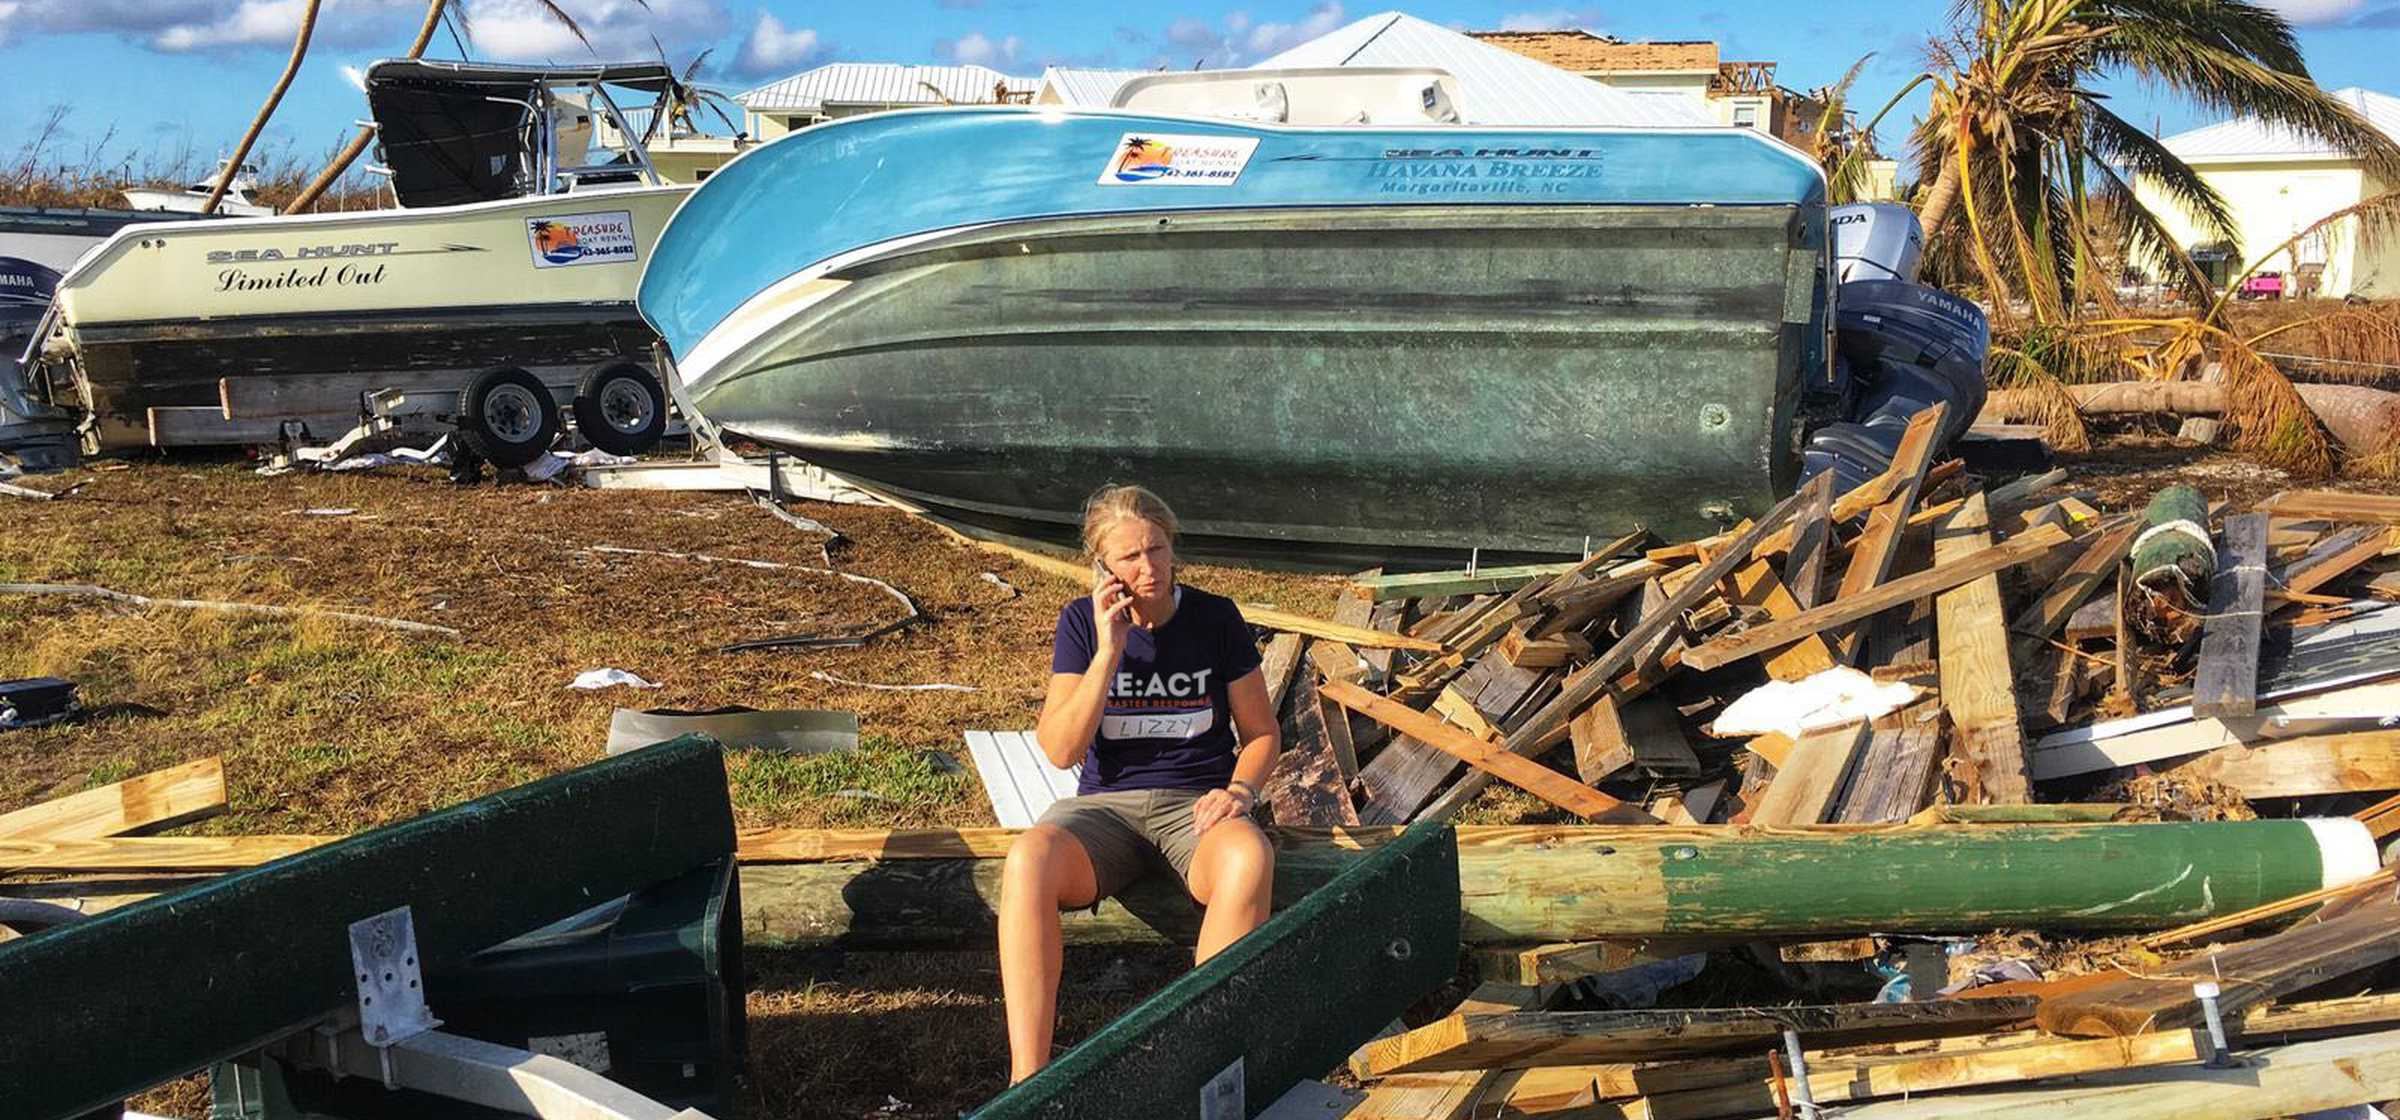 Lizzy with overturned boat in background.jpg